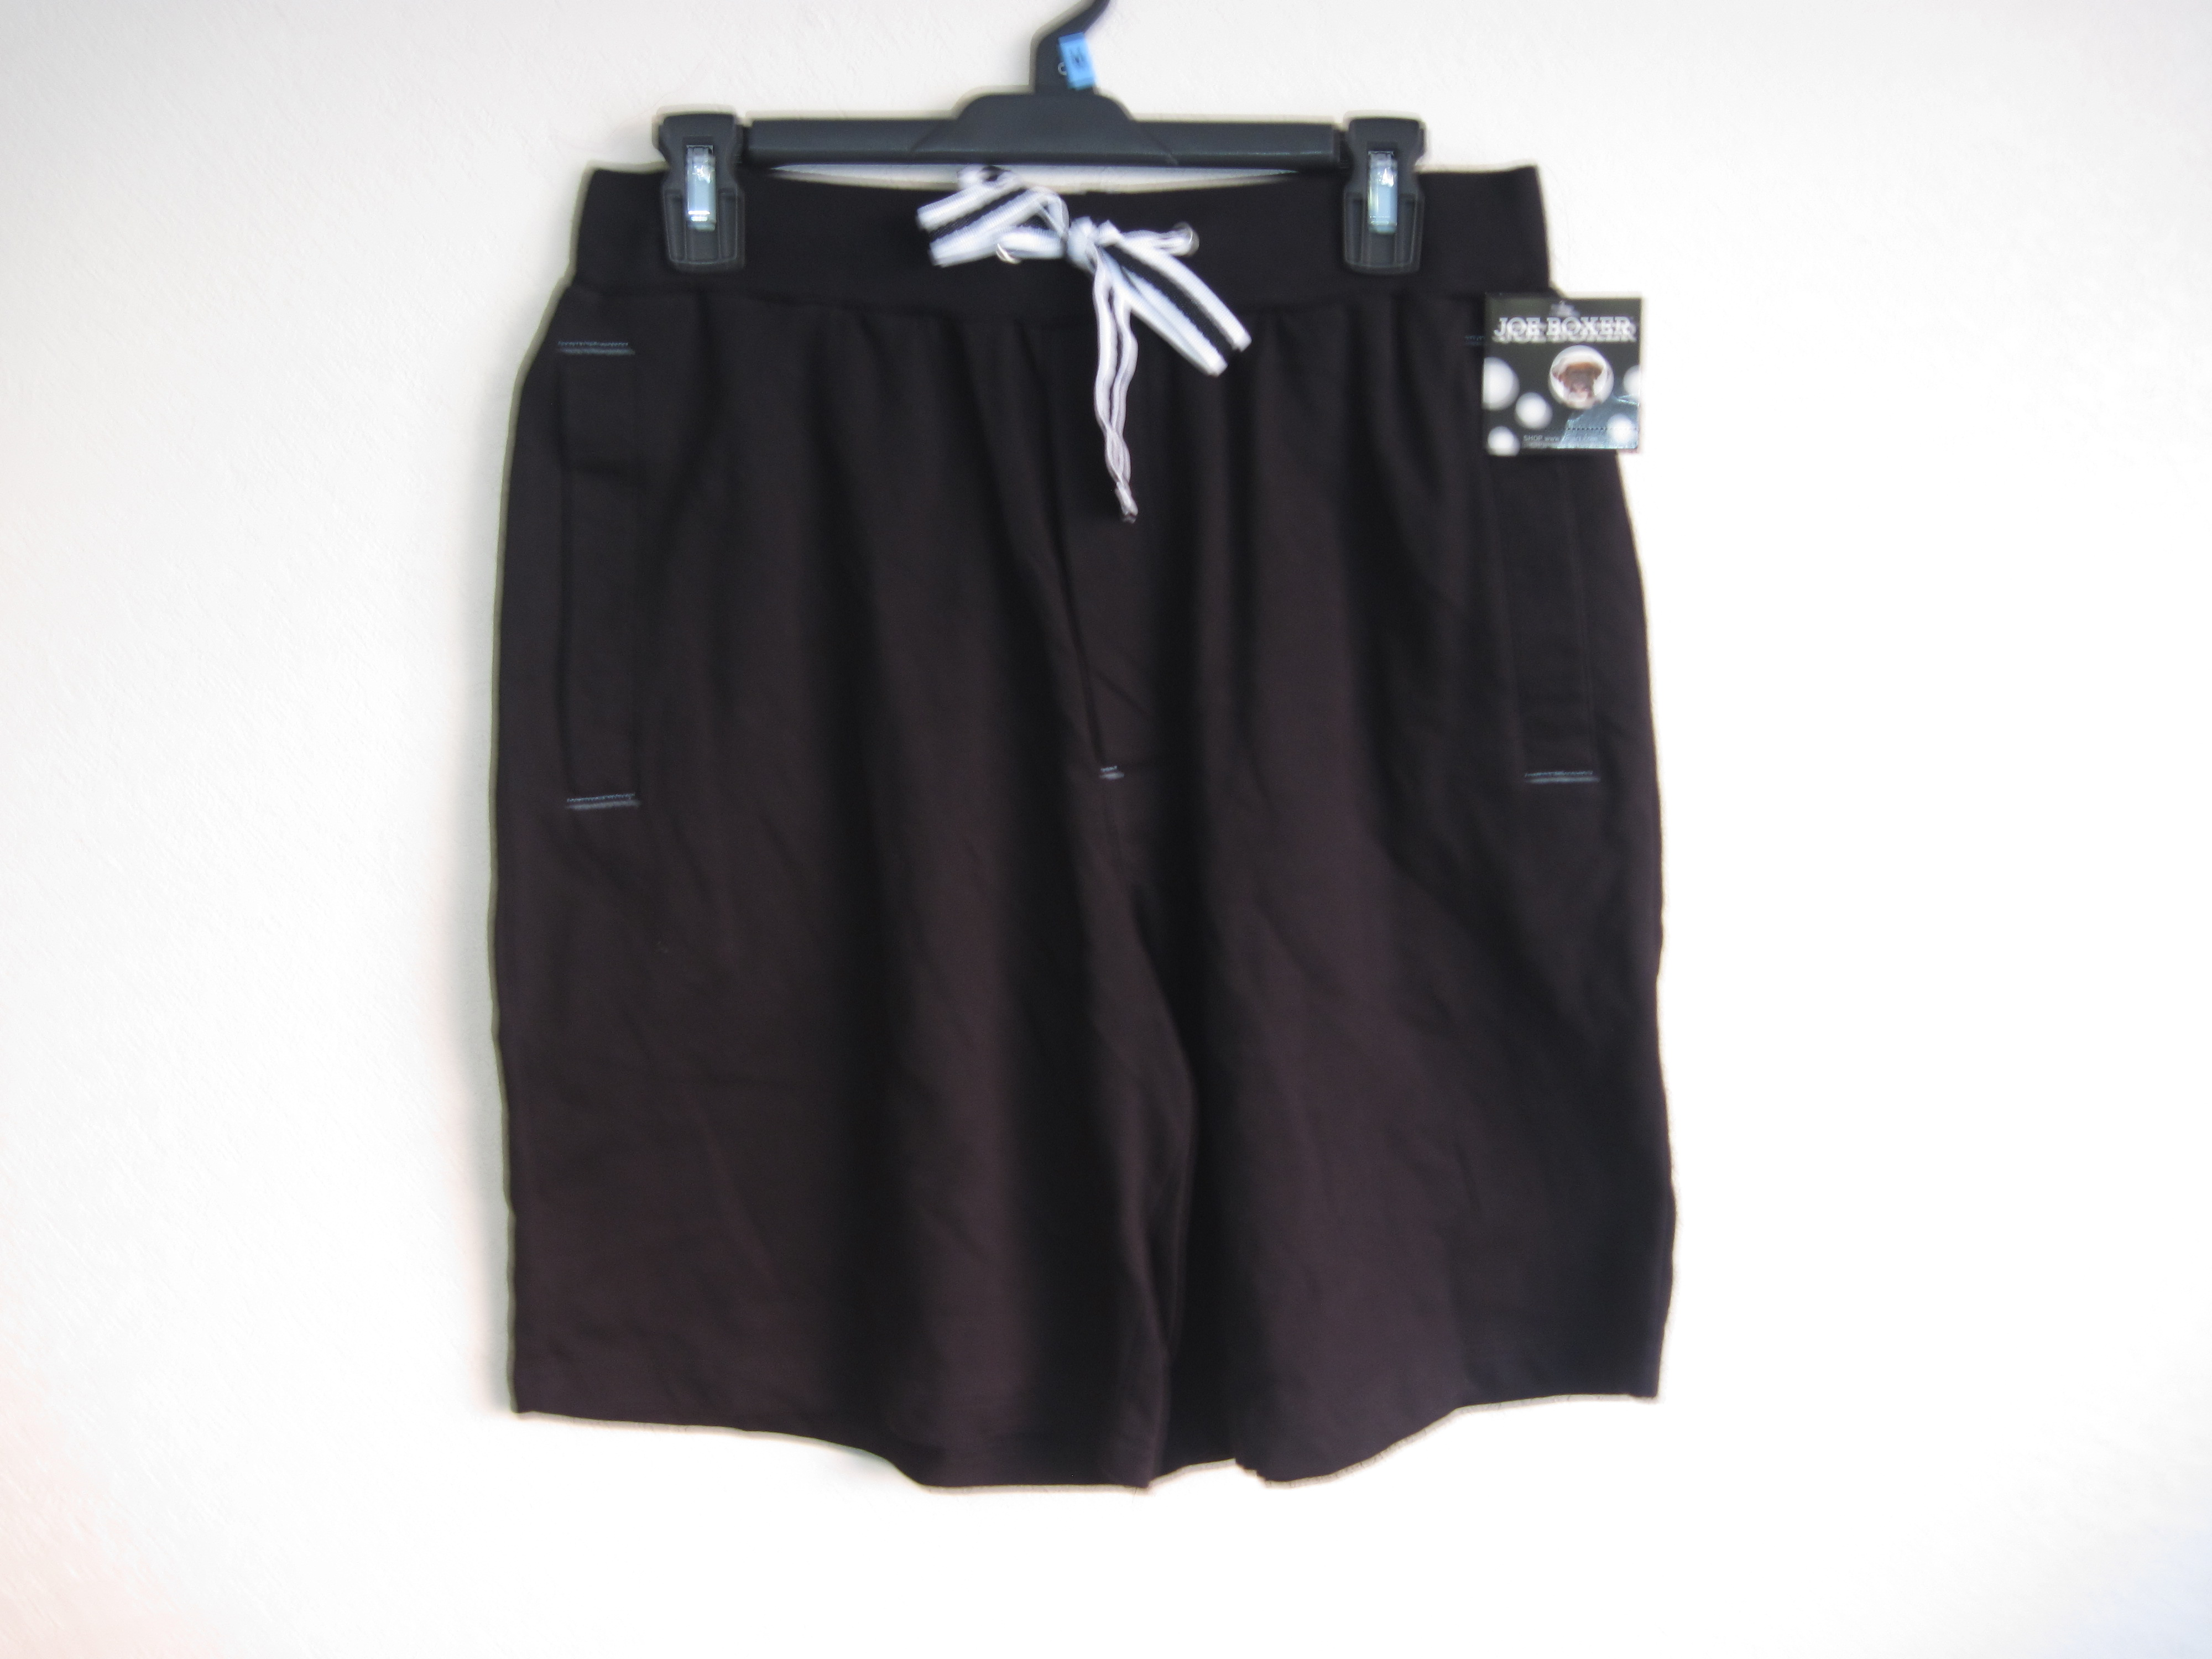 Joe Boxer Sz m Mens Shorts (Black & White)